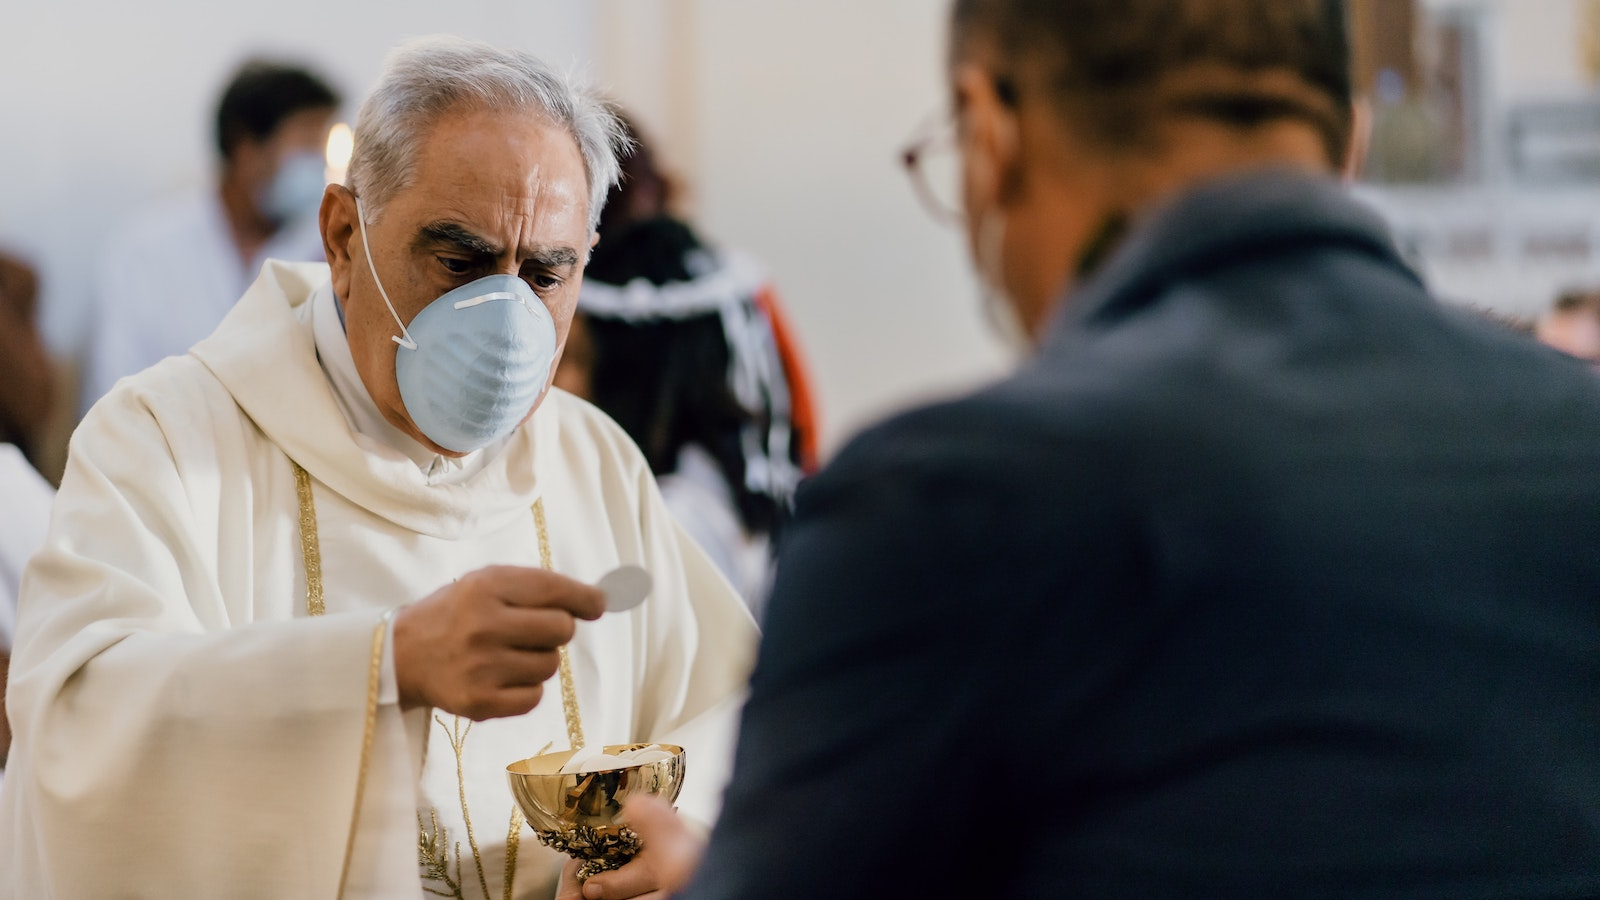 Masked priest delivers Communion